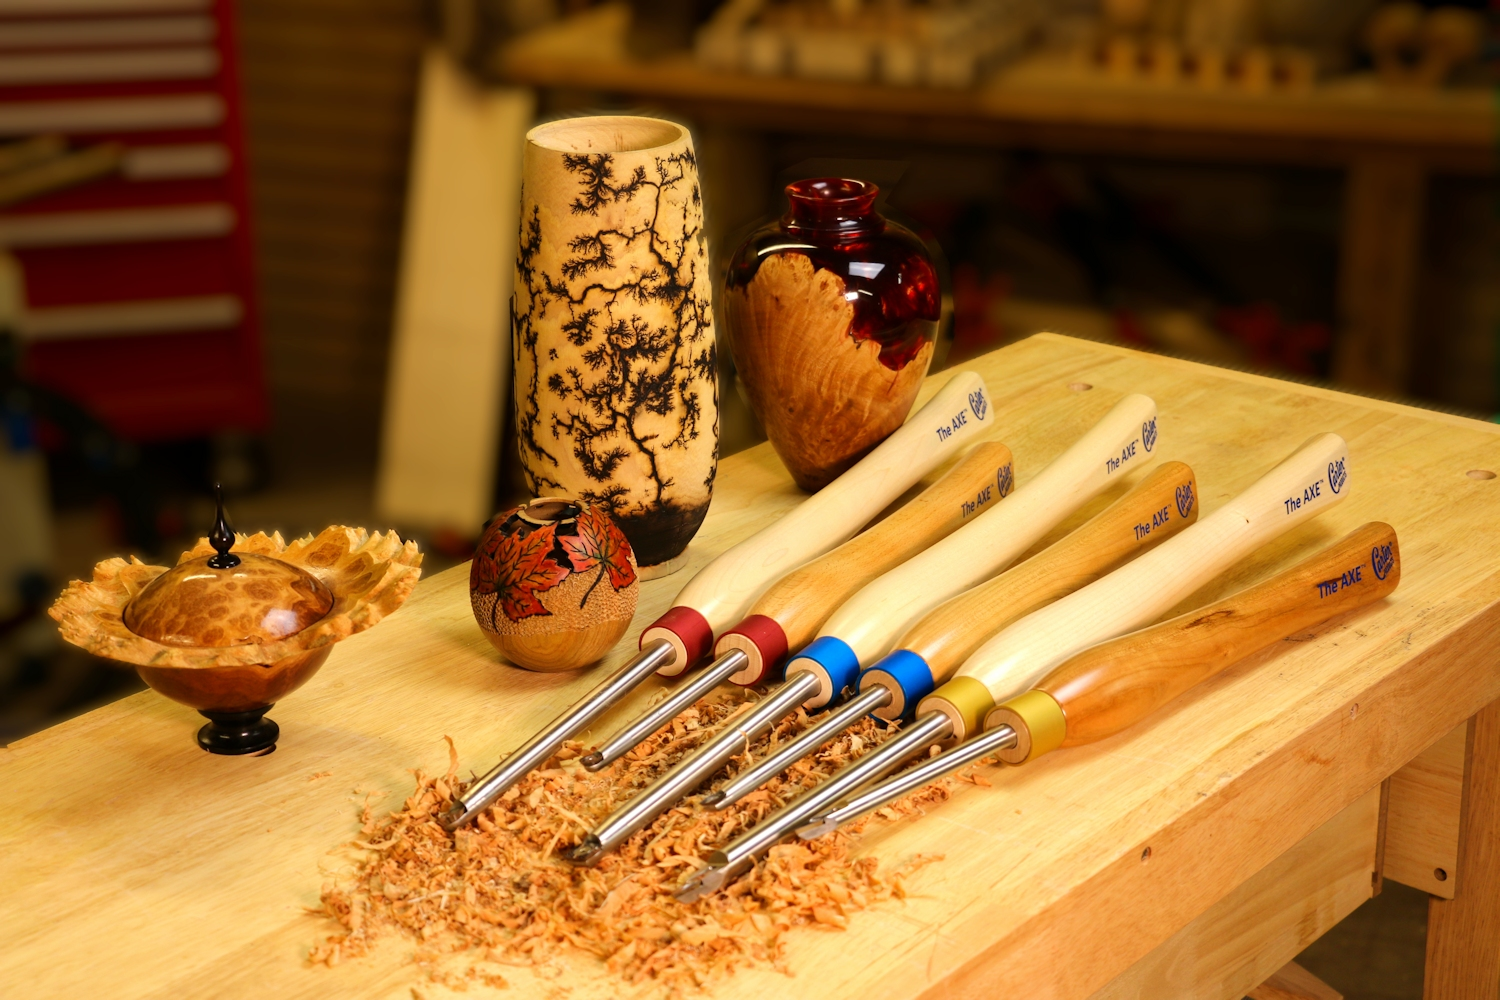 The AXE™ Woodturning Tools